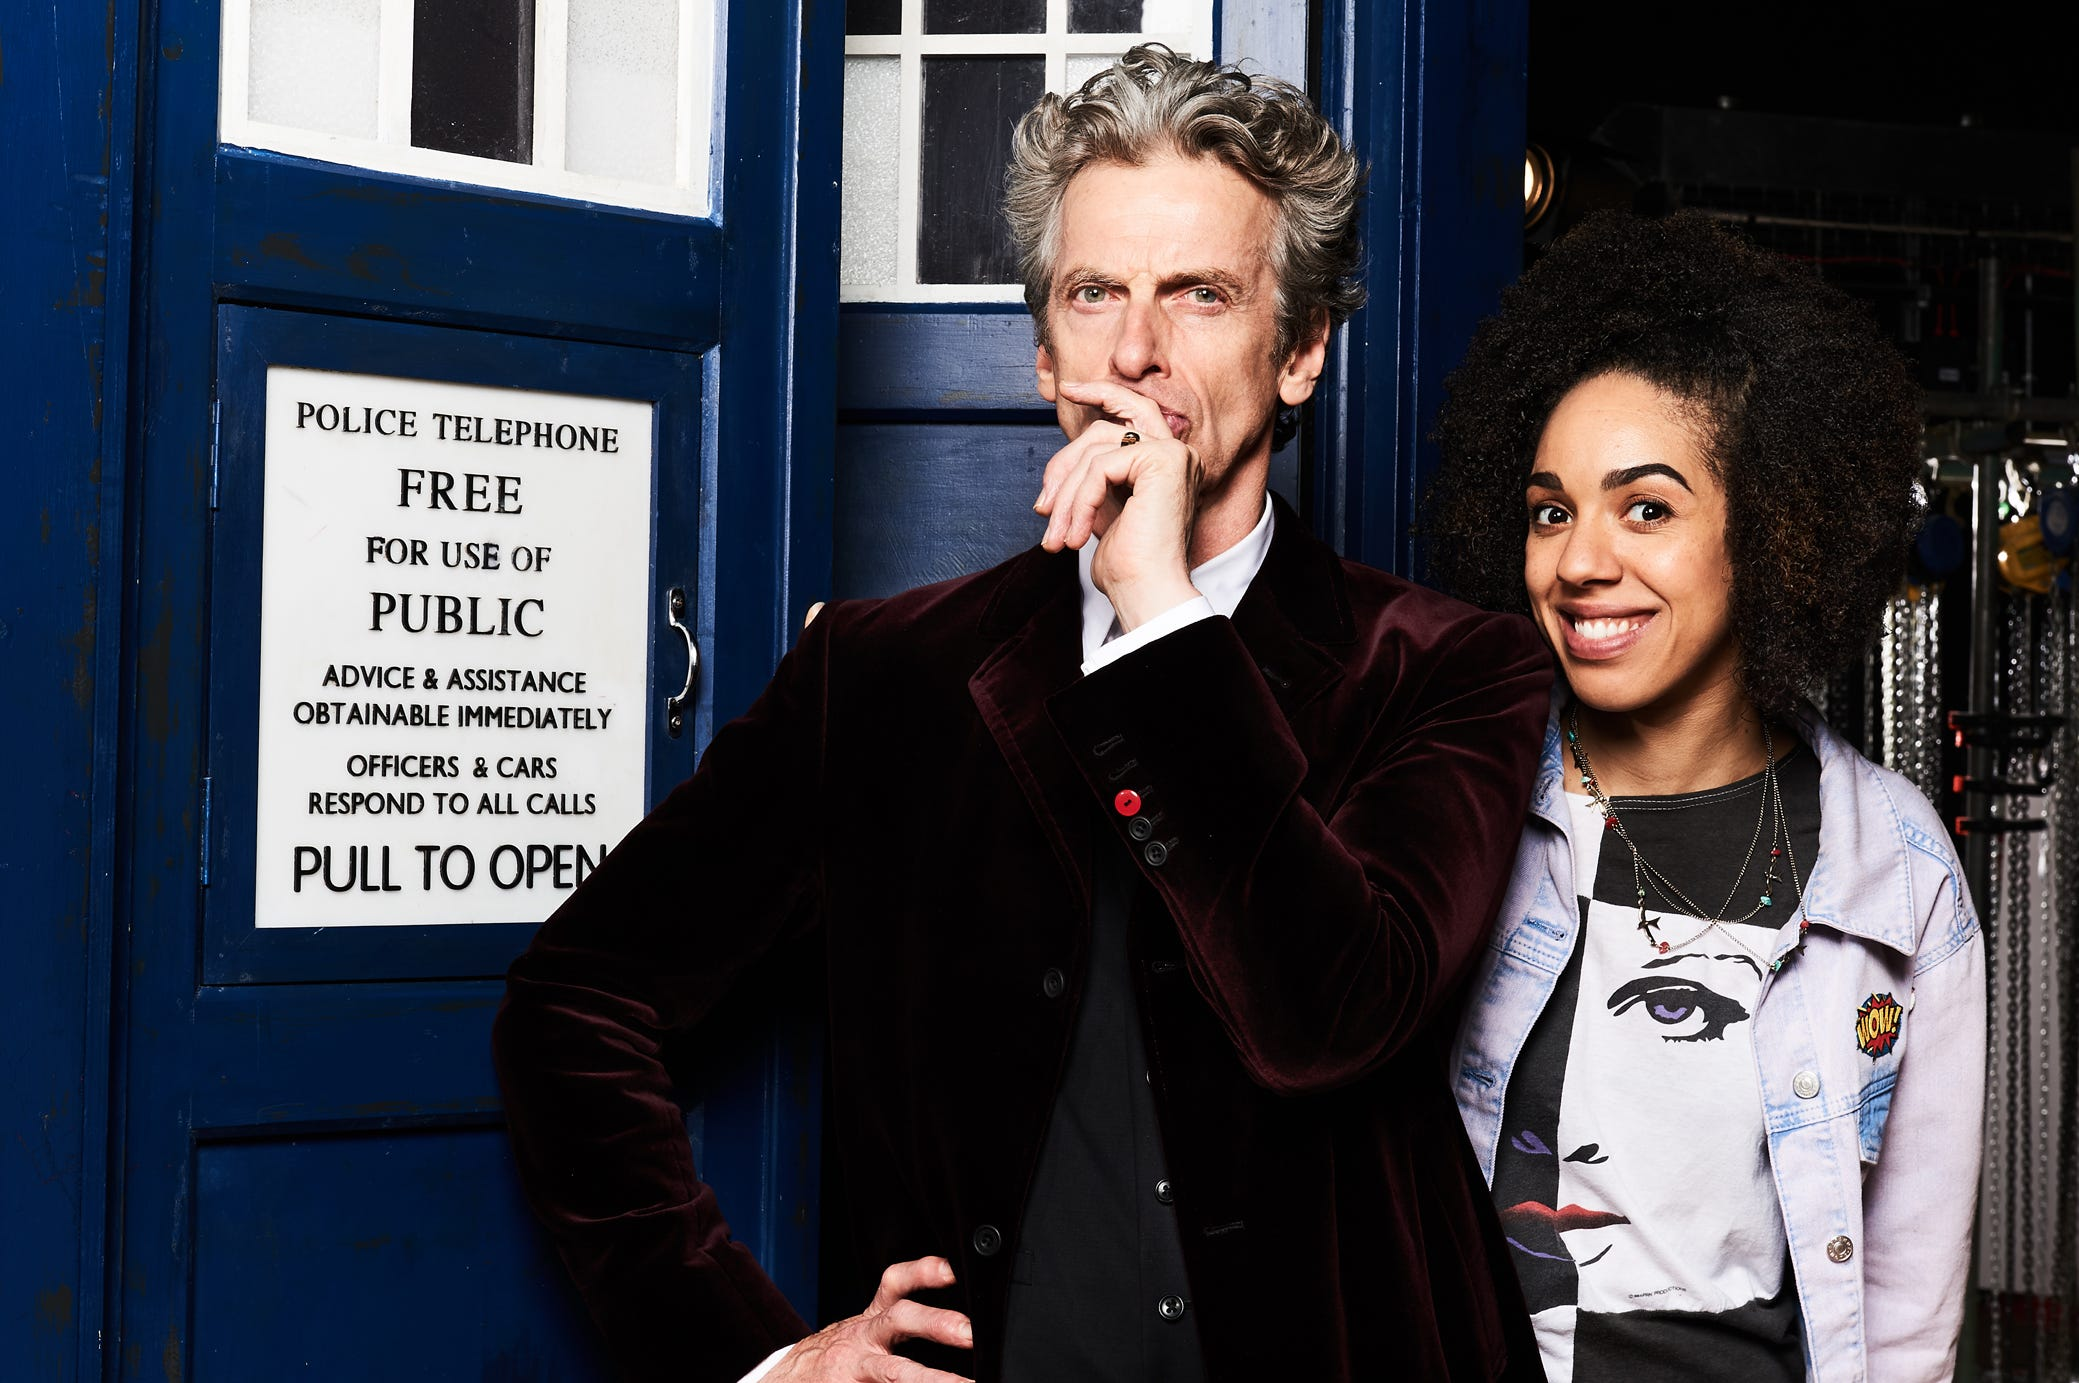 EXCLUSIVE: Doctor Who's Peter Capaldi On Fans, Tennant And Being A Heartthrob photo